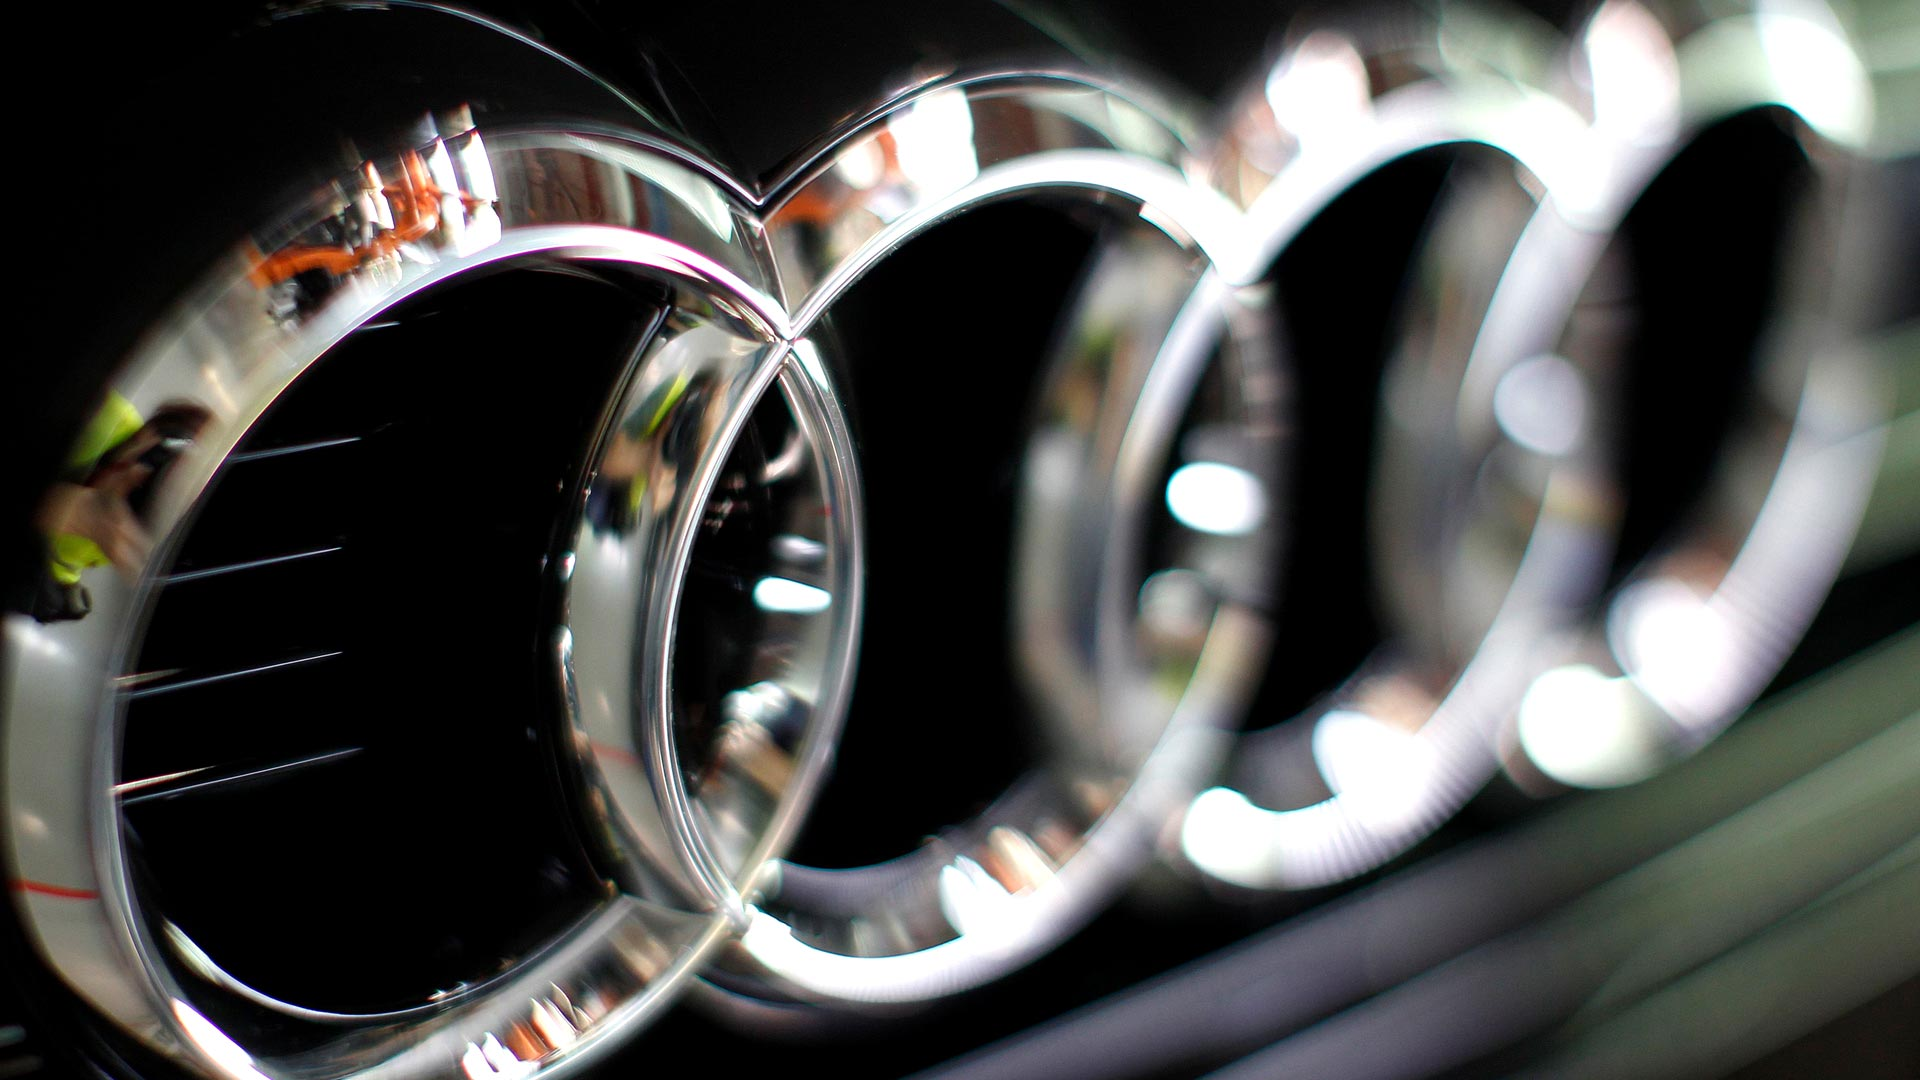 Hd wallpaper download for pc 1080p - Audi Logo Full Hd Wallpaper 1920x1080